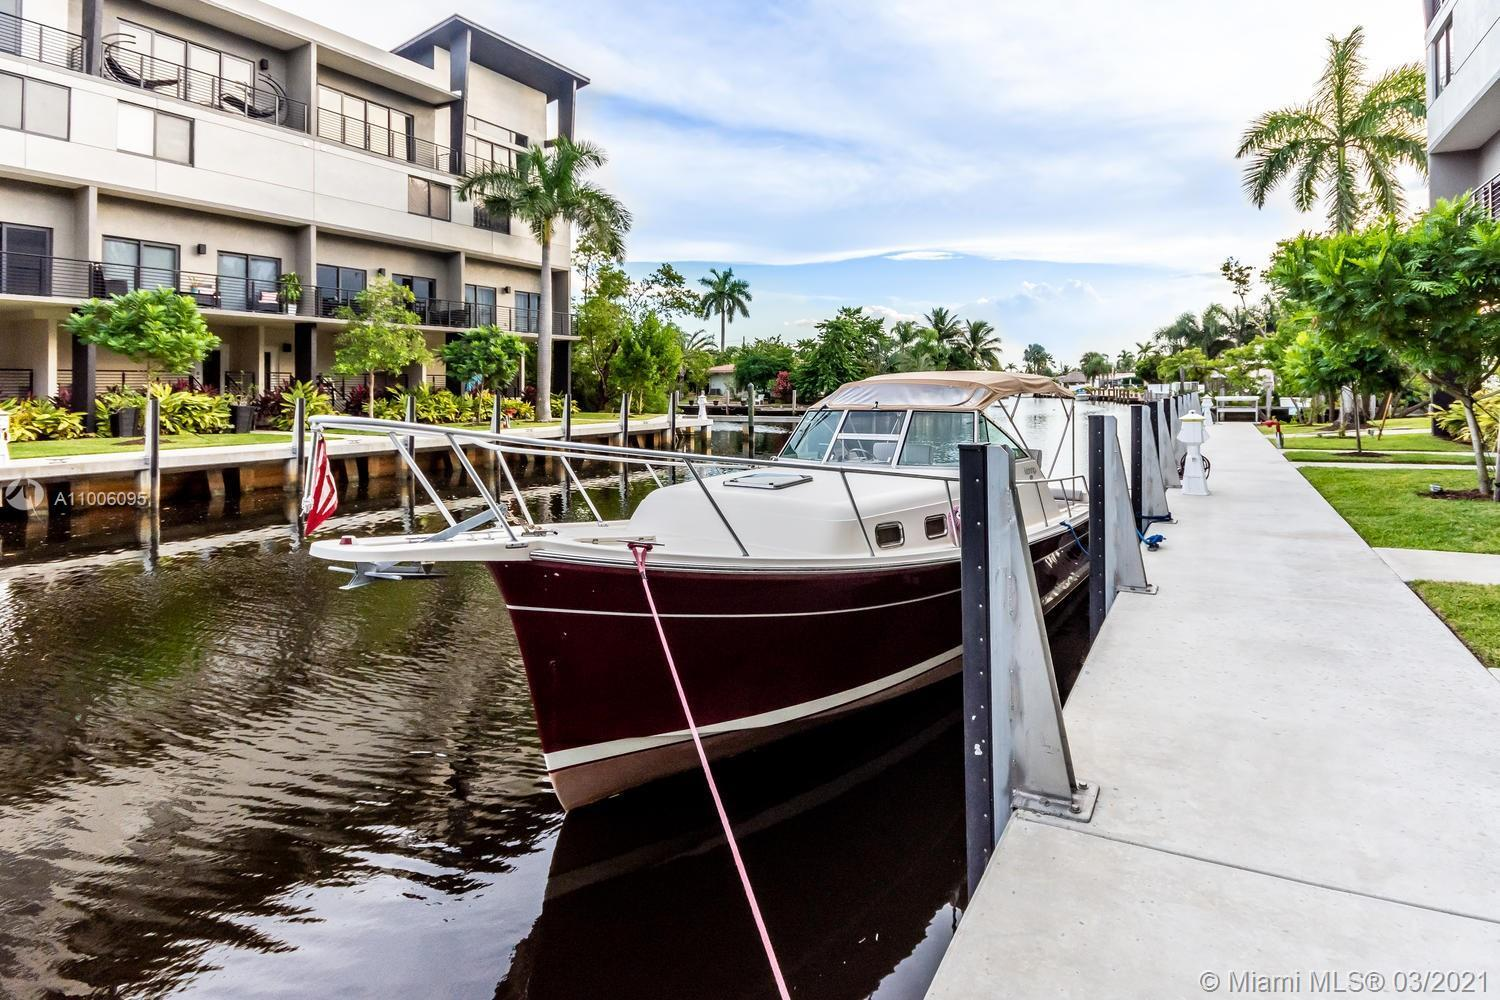 Bring your boat! Modern Luxurious Upgraded & Waterfront beauty with ocean access! 3 Bed 3 Bath  Town